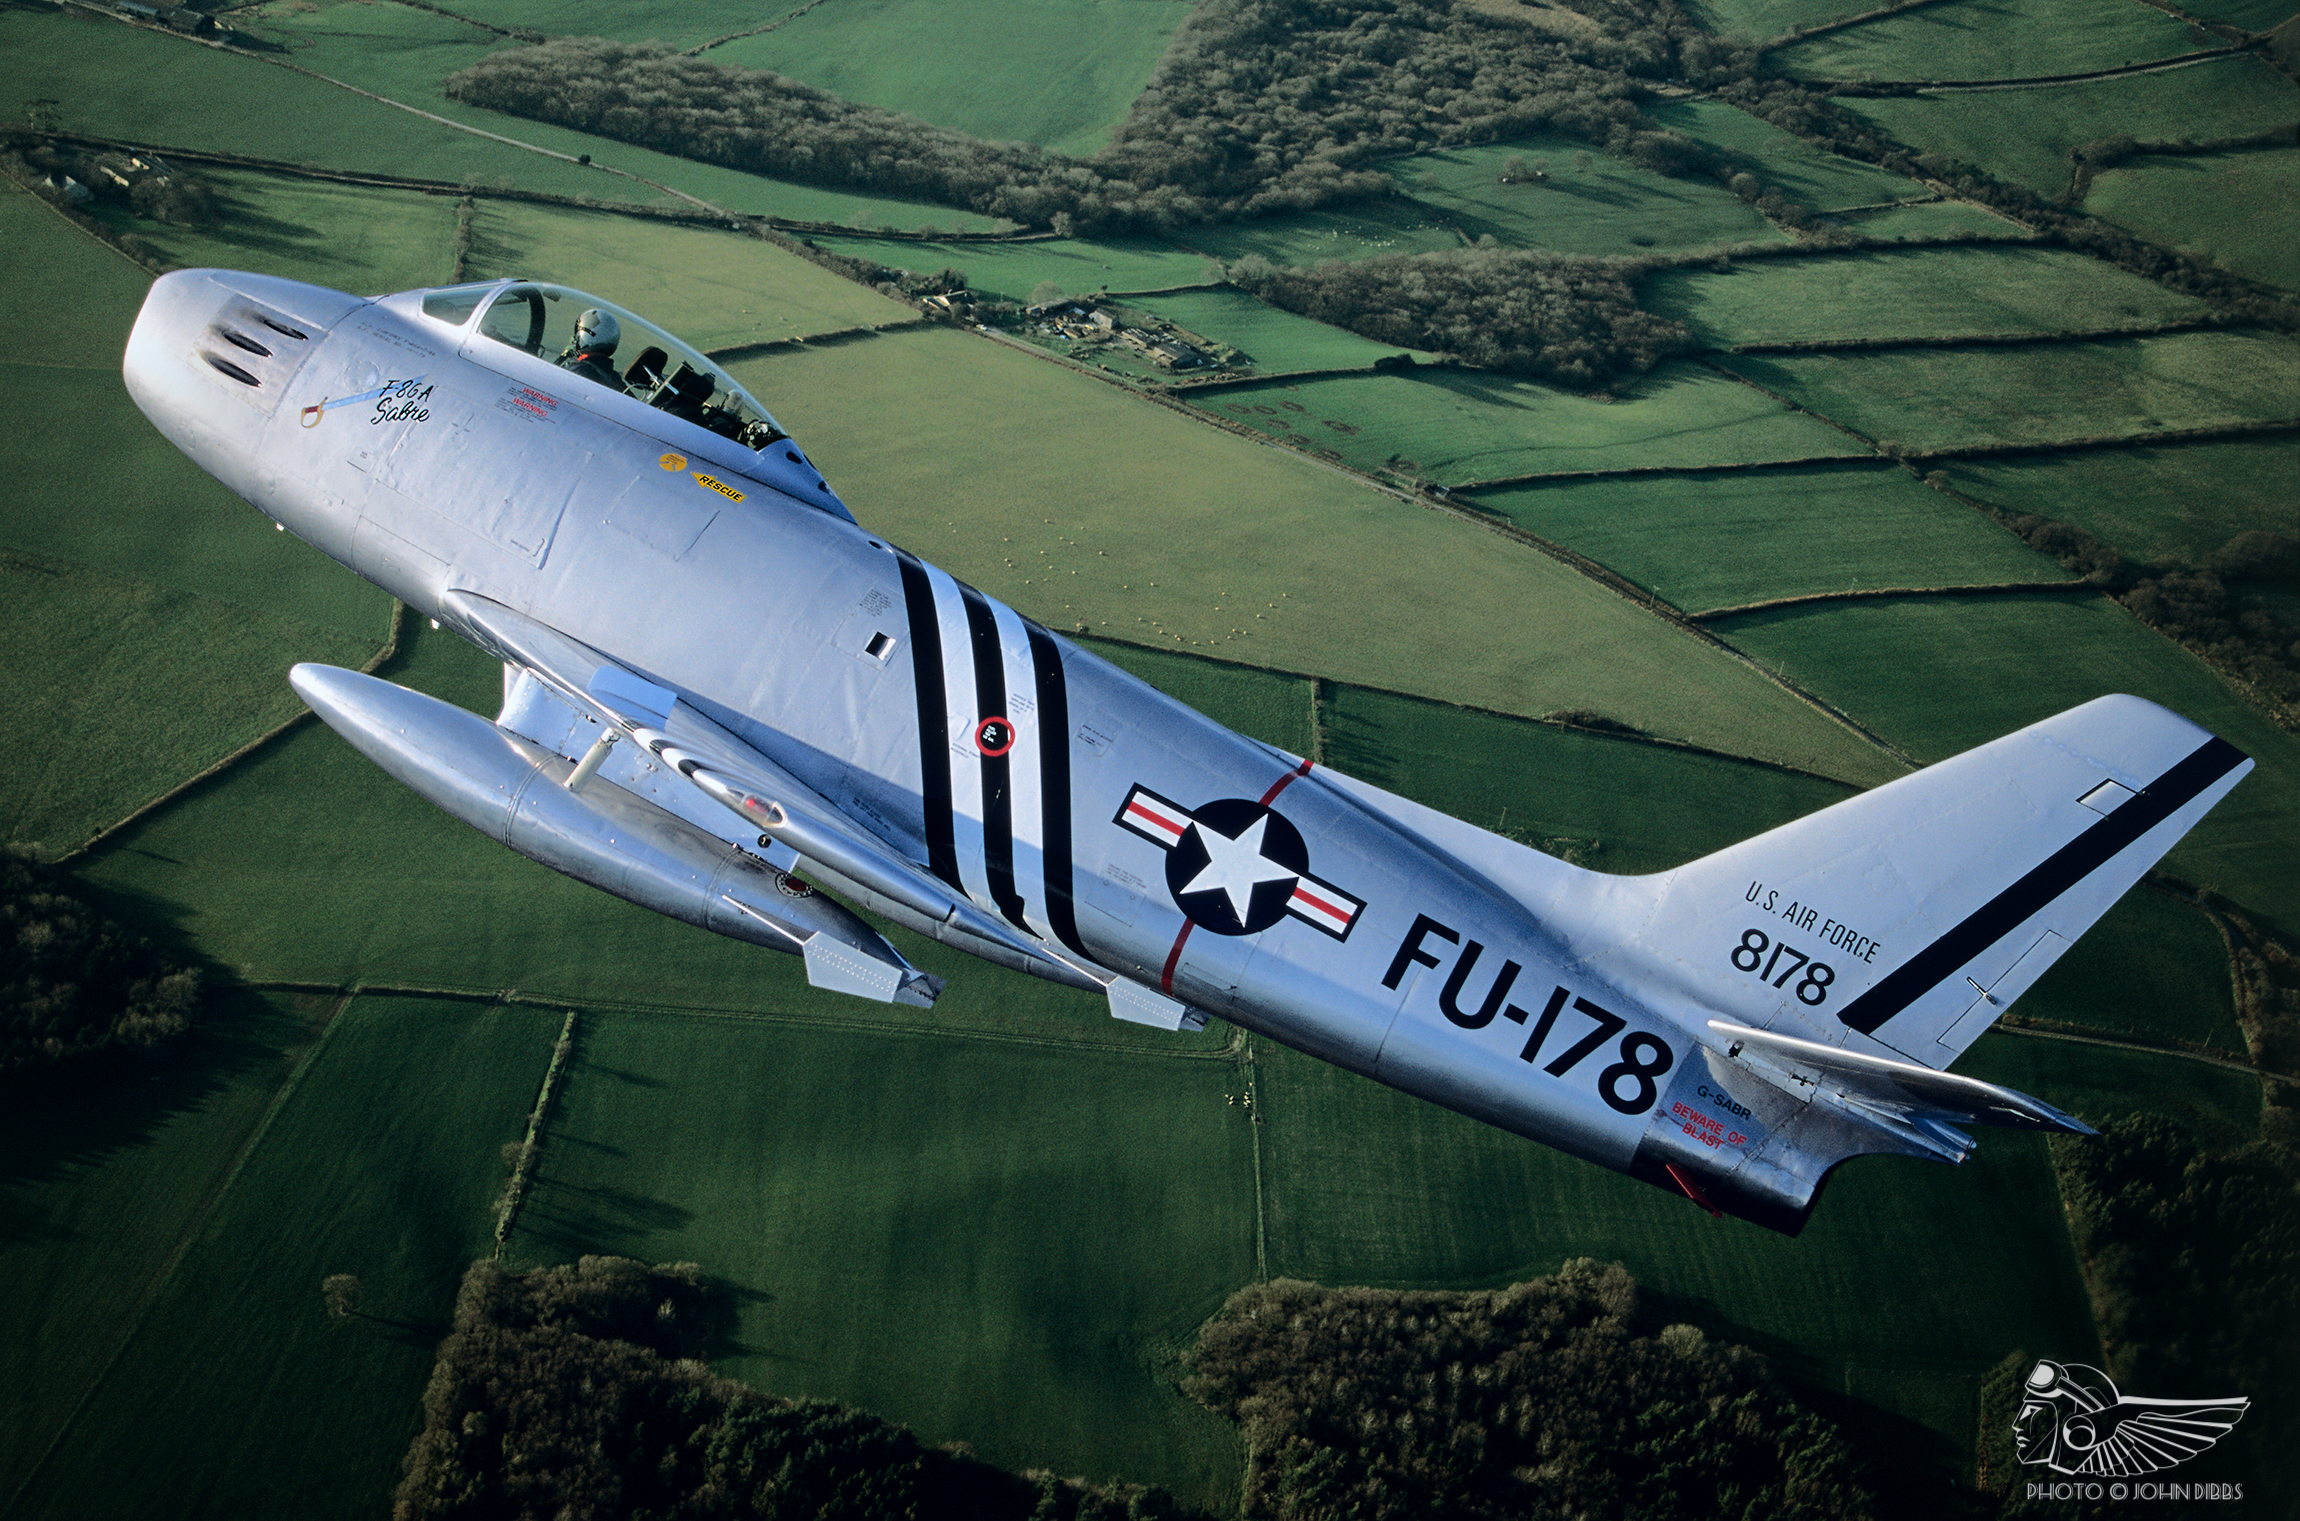 F 86a Sabre The Test Pilots Perspective Vintage Aviation Echo Ailerons Control Roll Of An Airplane Is Demand That They Place On Hydraulic System Which Limited Power And Capacity By Modern Standards Flight Controls Are